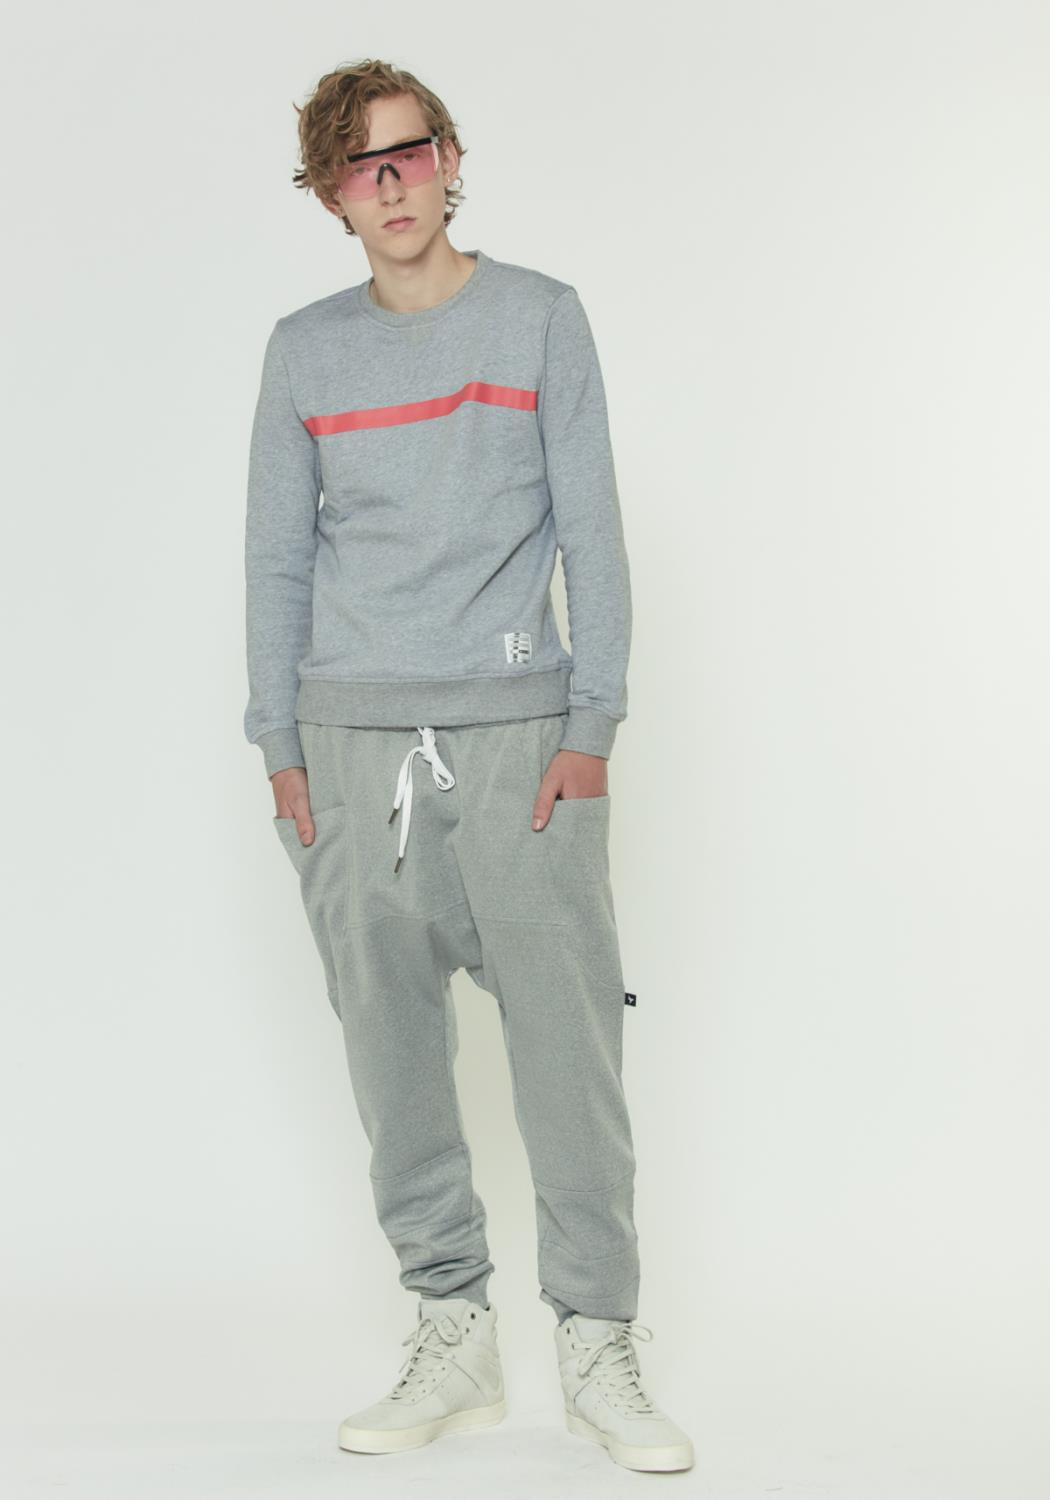 TRACK PANTS IN LIGHT WEIGHT SCUBA FABRIC